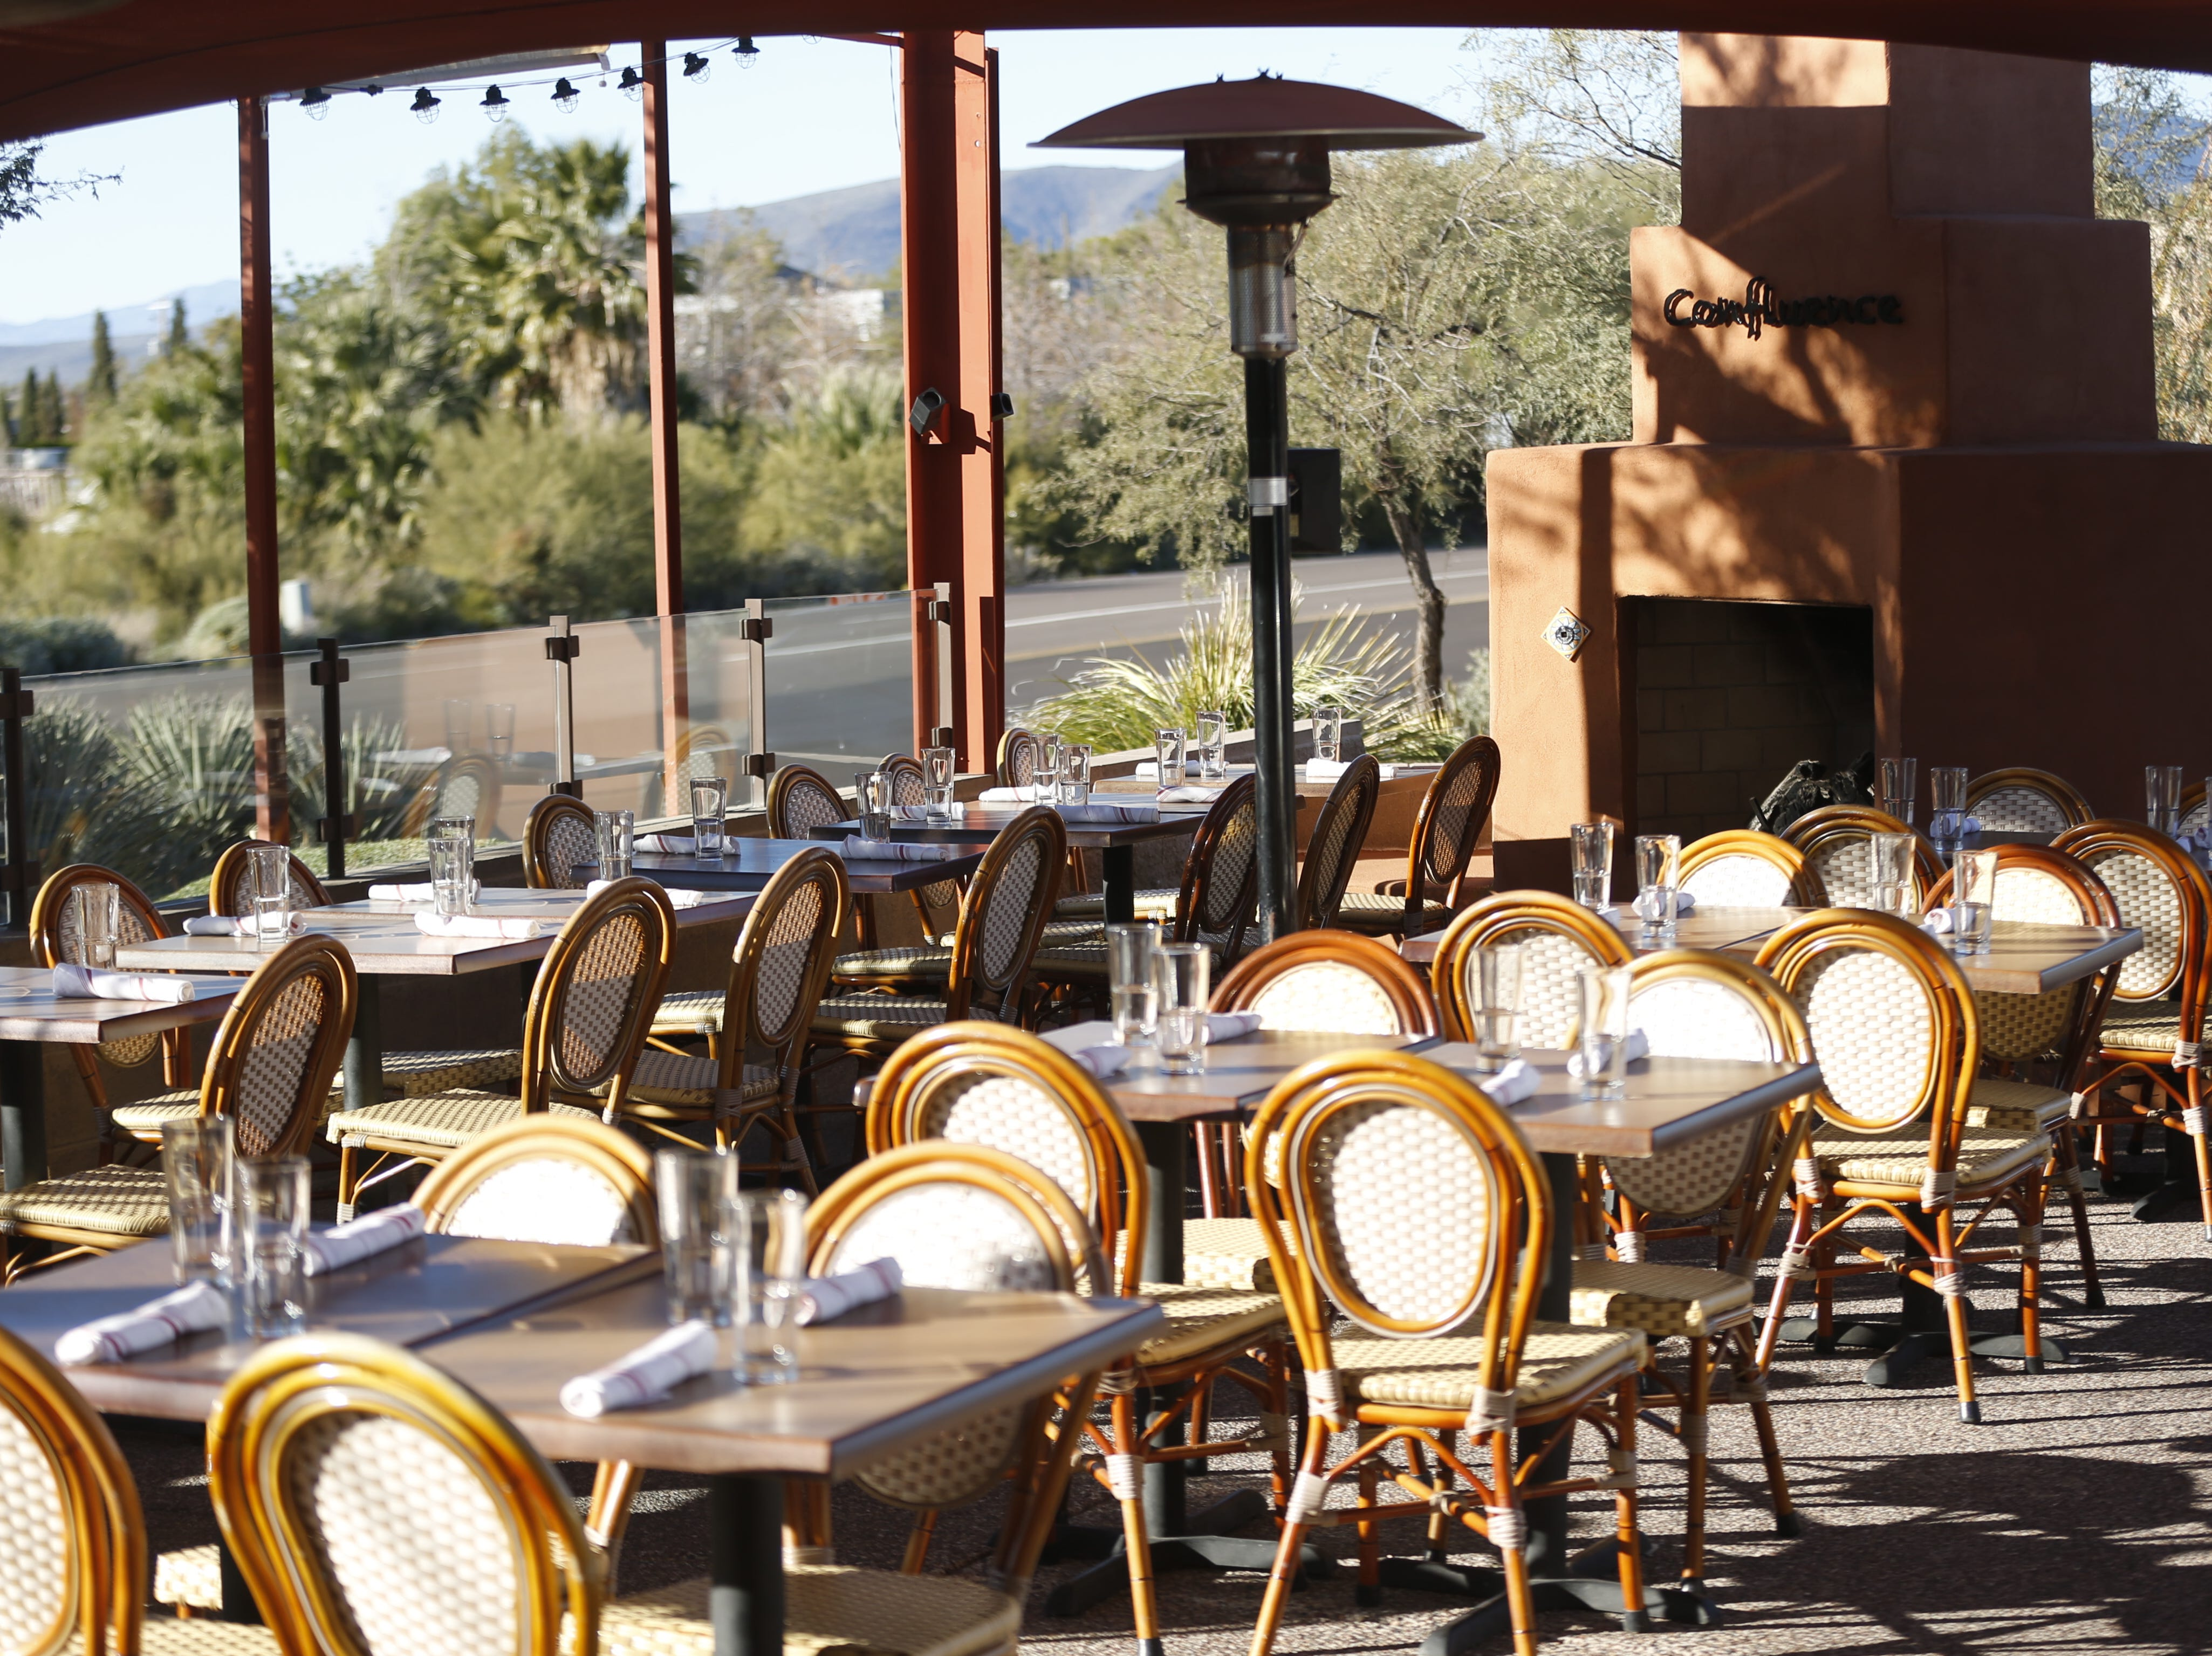 The outdoor seating area at Confluence in Carefree, Ariz. on December 3, 2018.